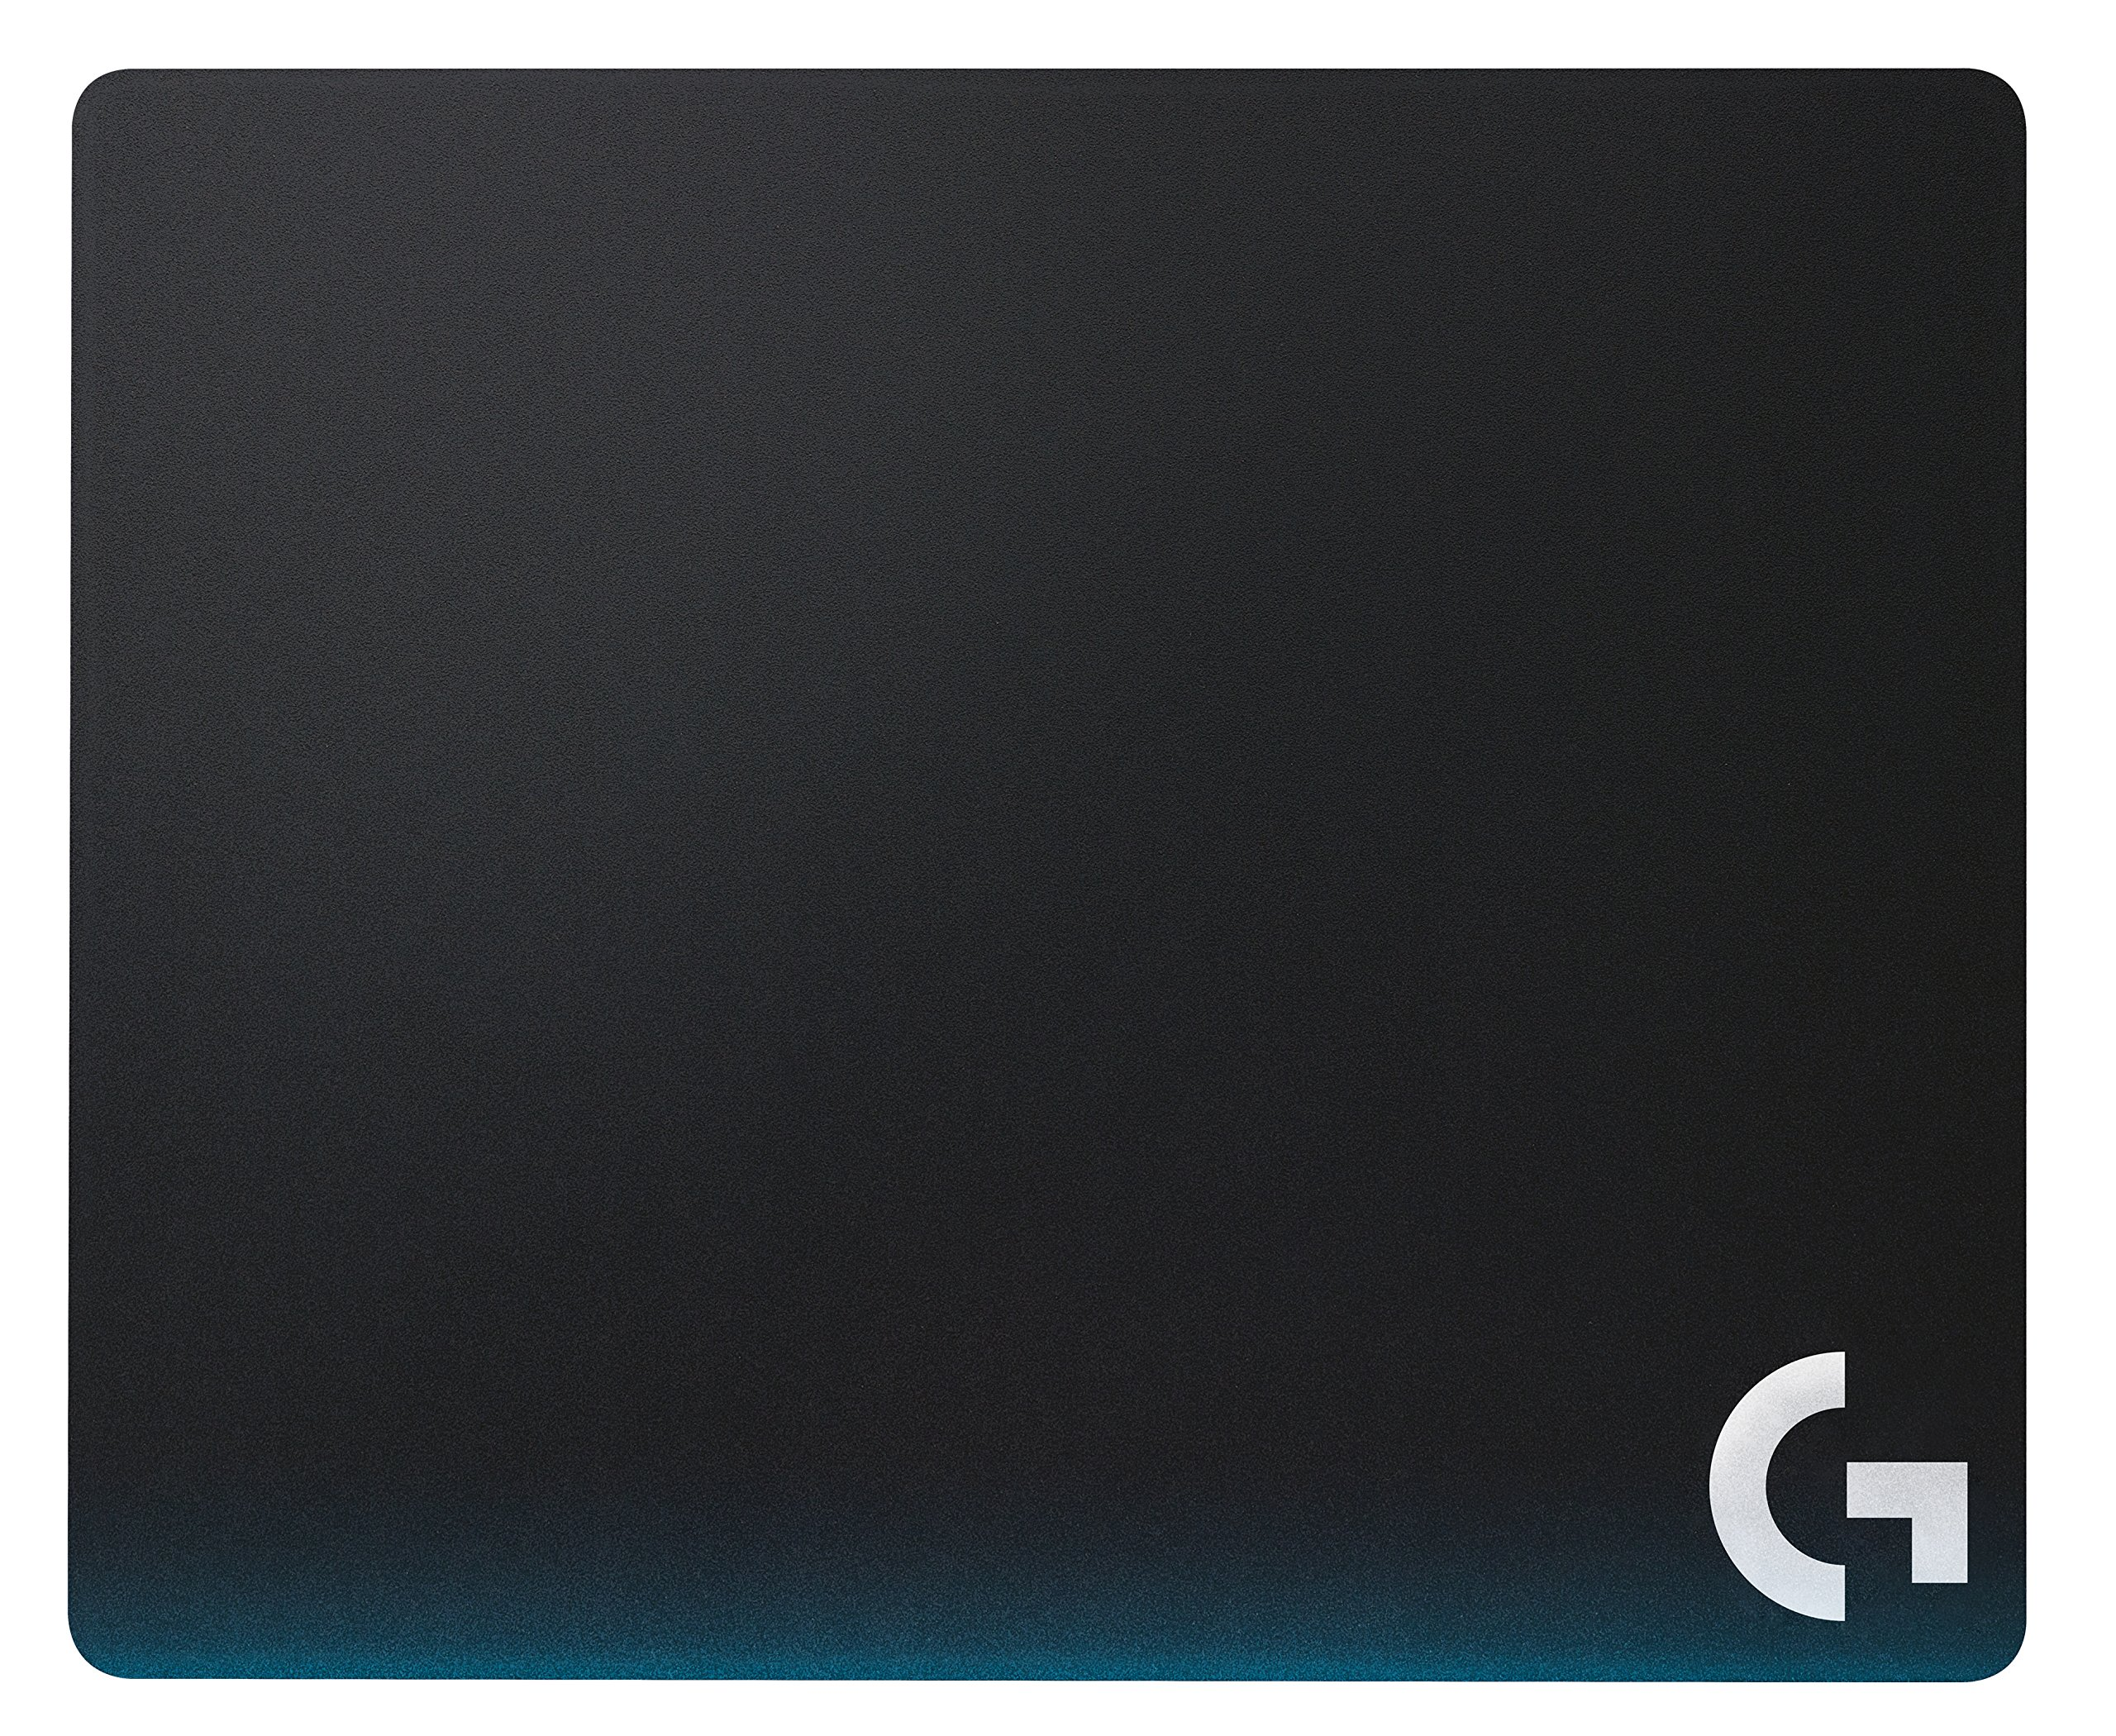 Logitech G440 Hard Gaming Mouse Pad for High DPI Gaming by Logitech G